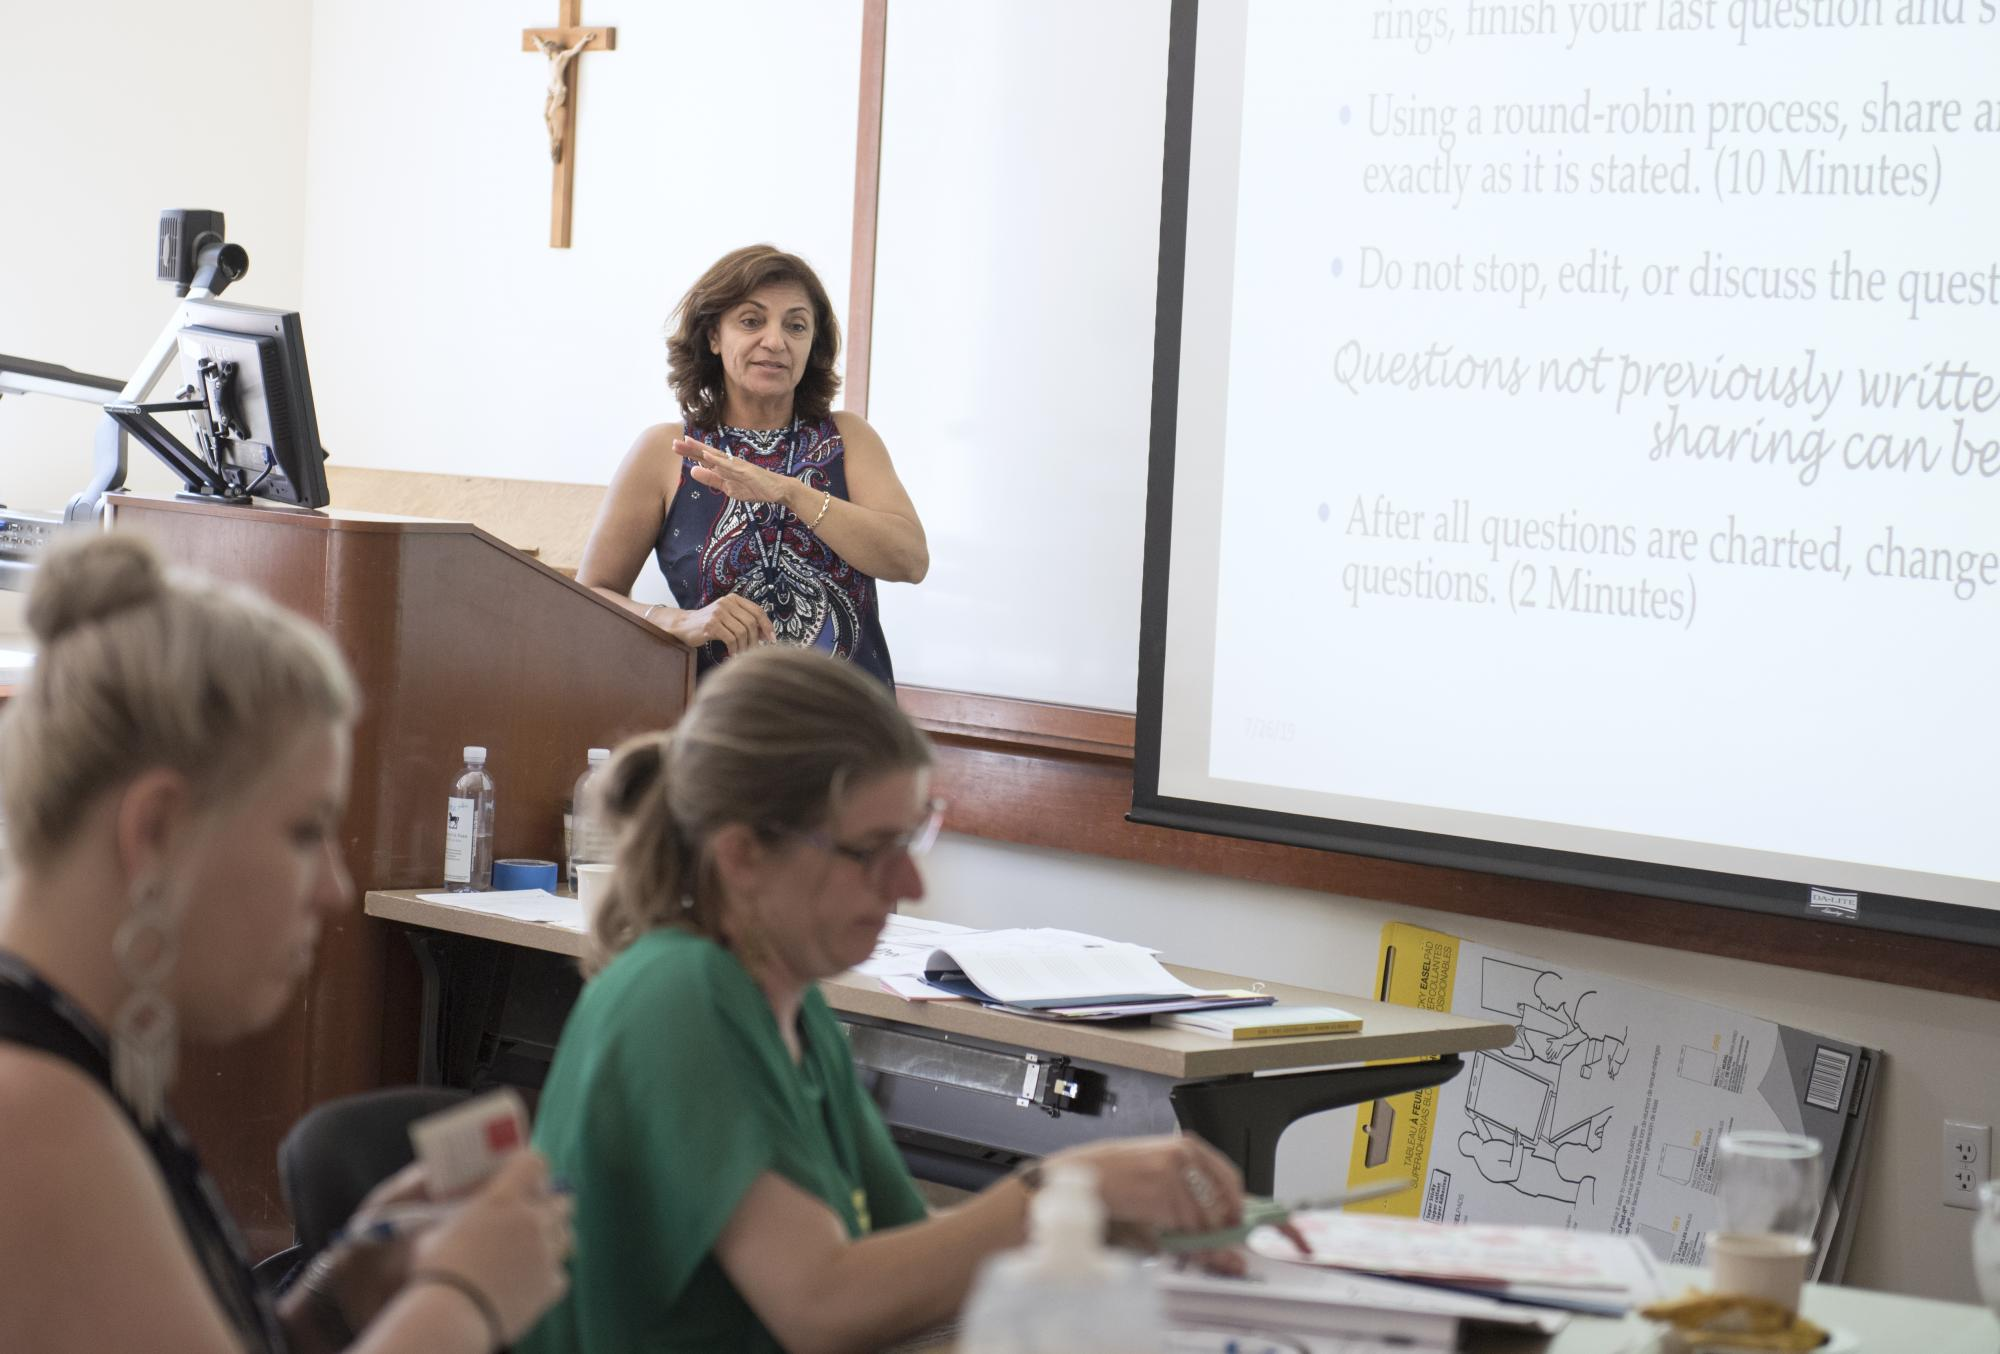 Features Nahid Nariman, specialist from TIDES (Transformative Inquiry Design for Effective Schools and System), at the 2019 CEL Summer CO-LAB at Saint Mary's College of California: July 26-28th, 2019. Photography by Maureen Esty and Haley Nelson